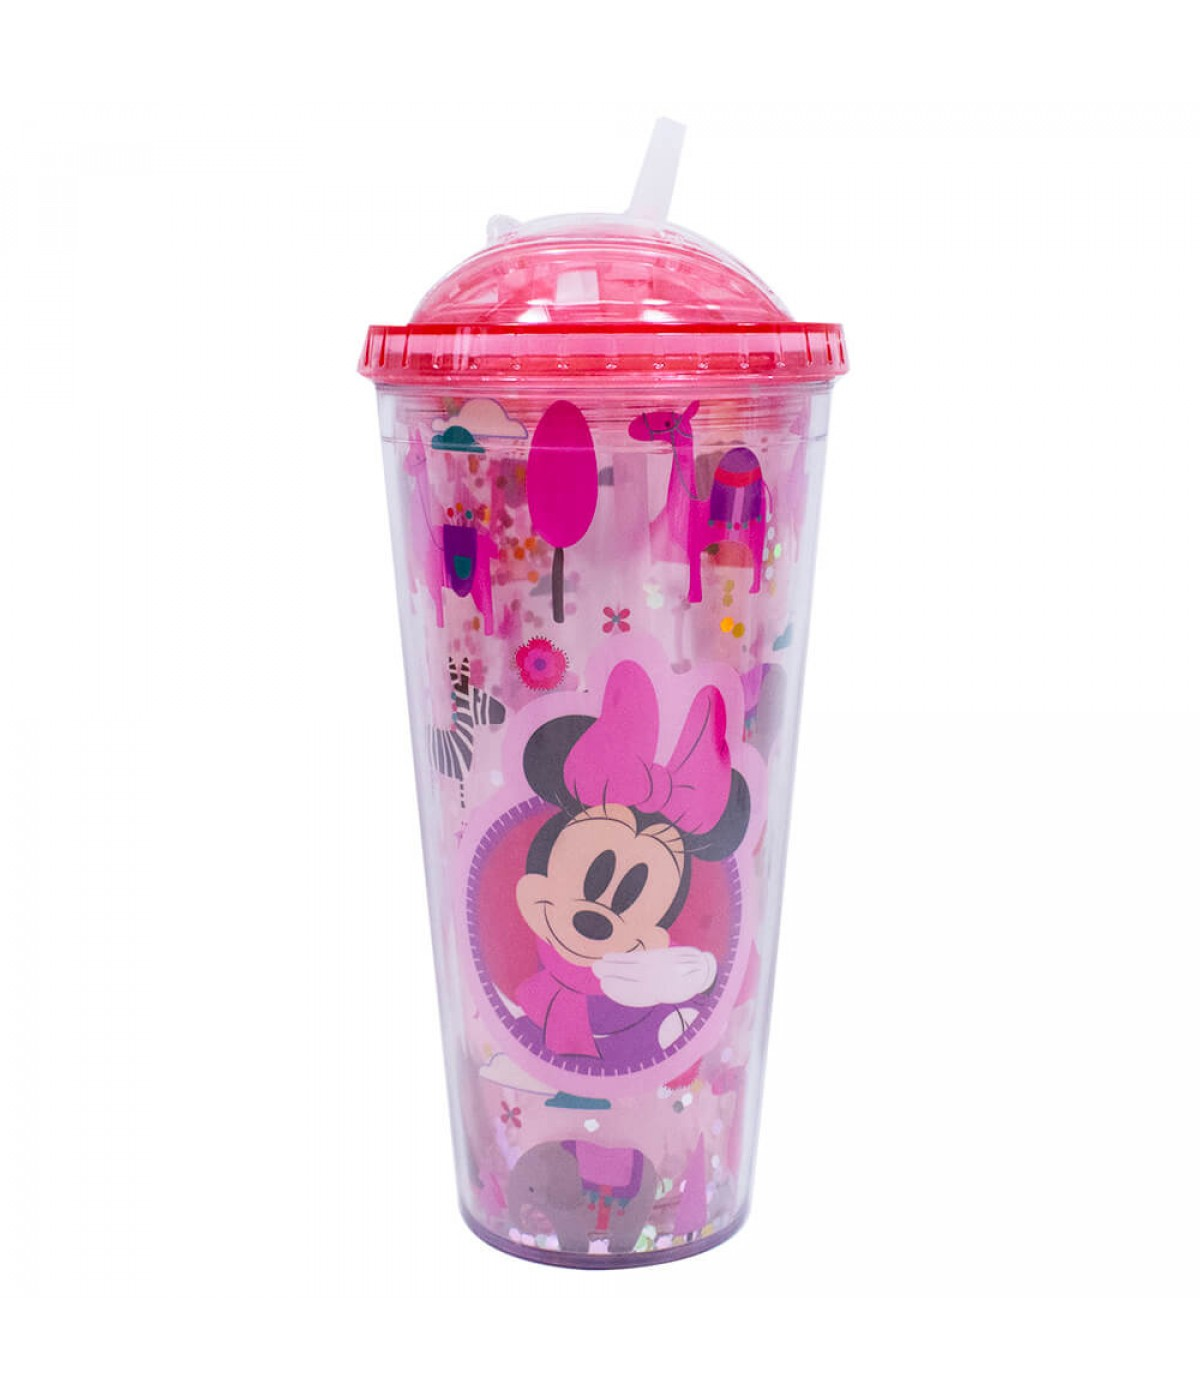 Copo Rosa Minnie Cubos Gelo Artificial 600ml